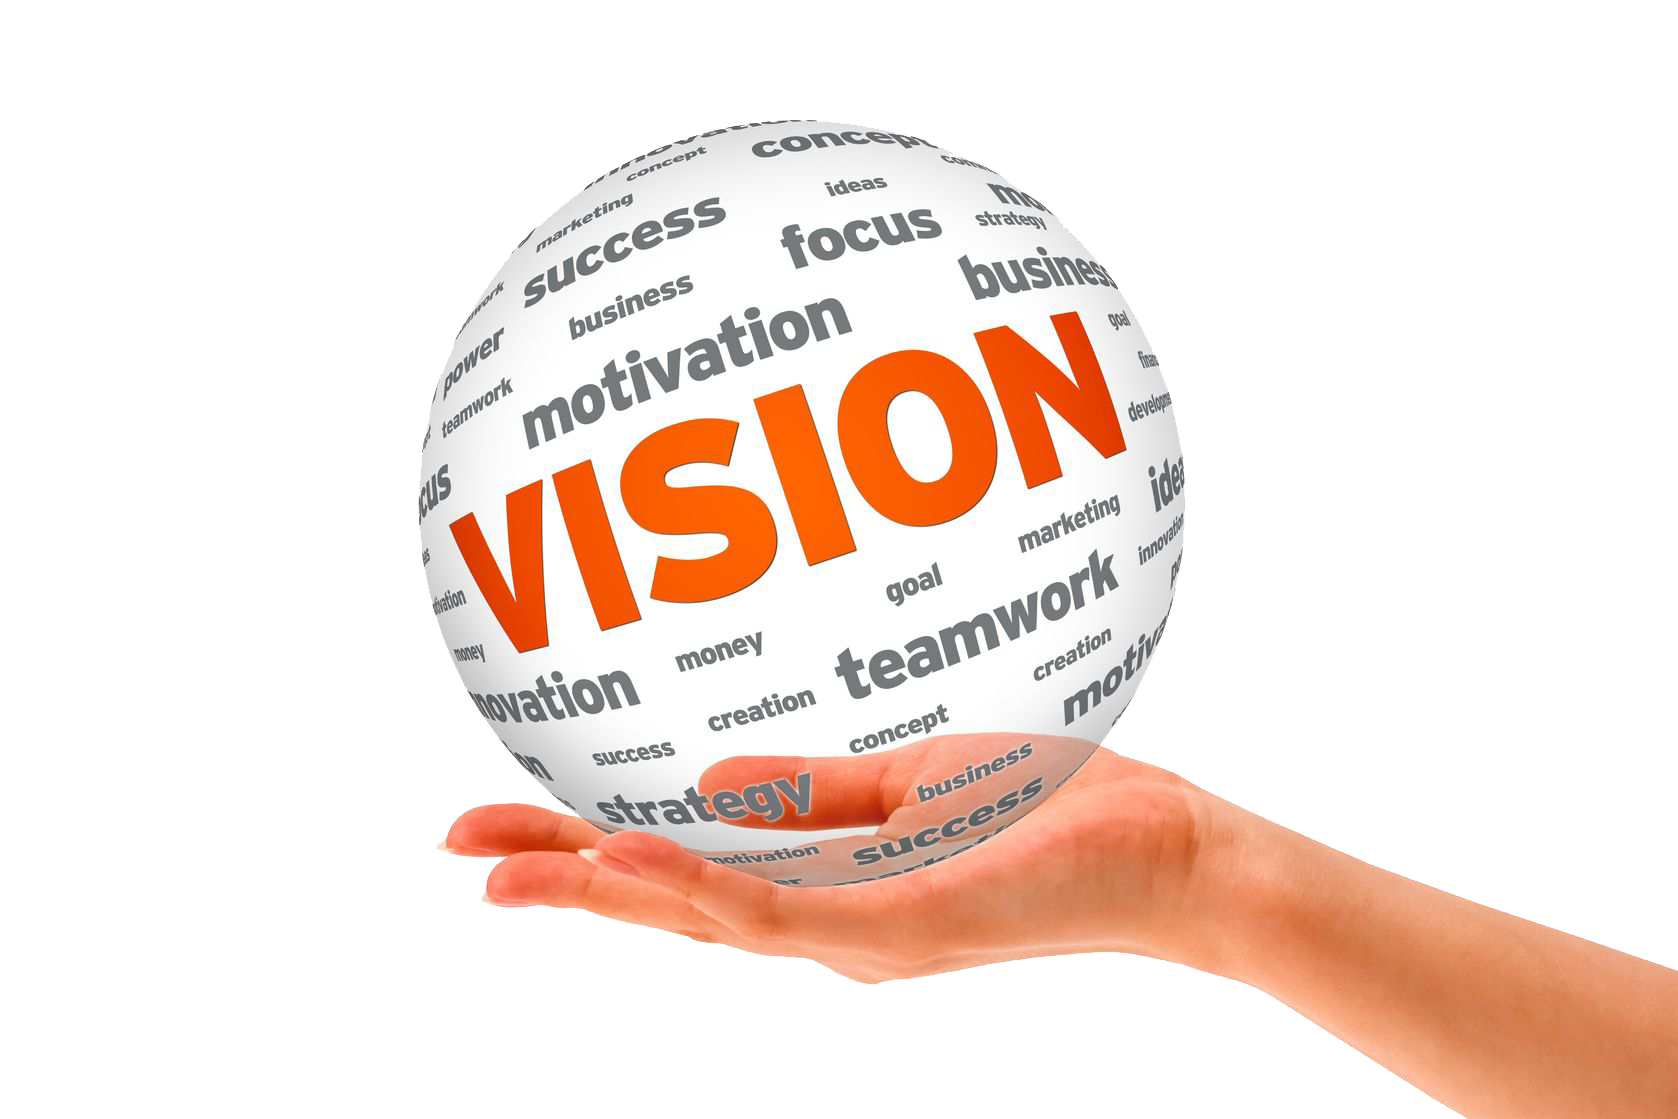 Mission and values. Vision clipart business vision